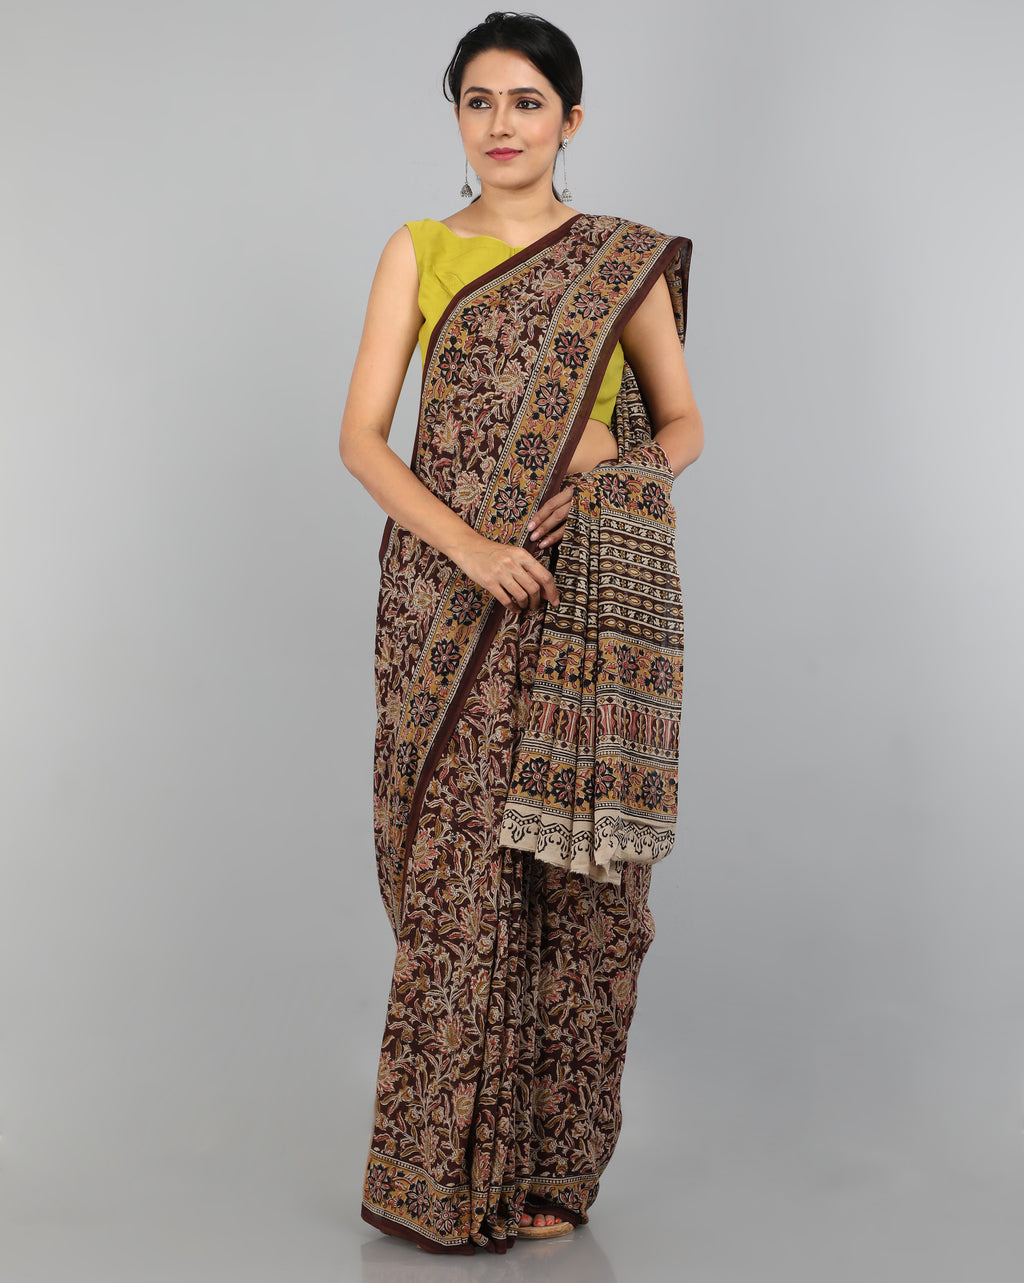 Pedana Kalamkari - Hand Block Printed - Mul Cotton Saree 08